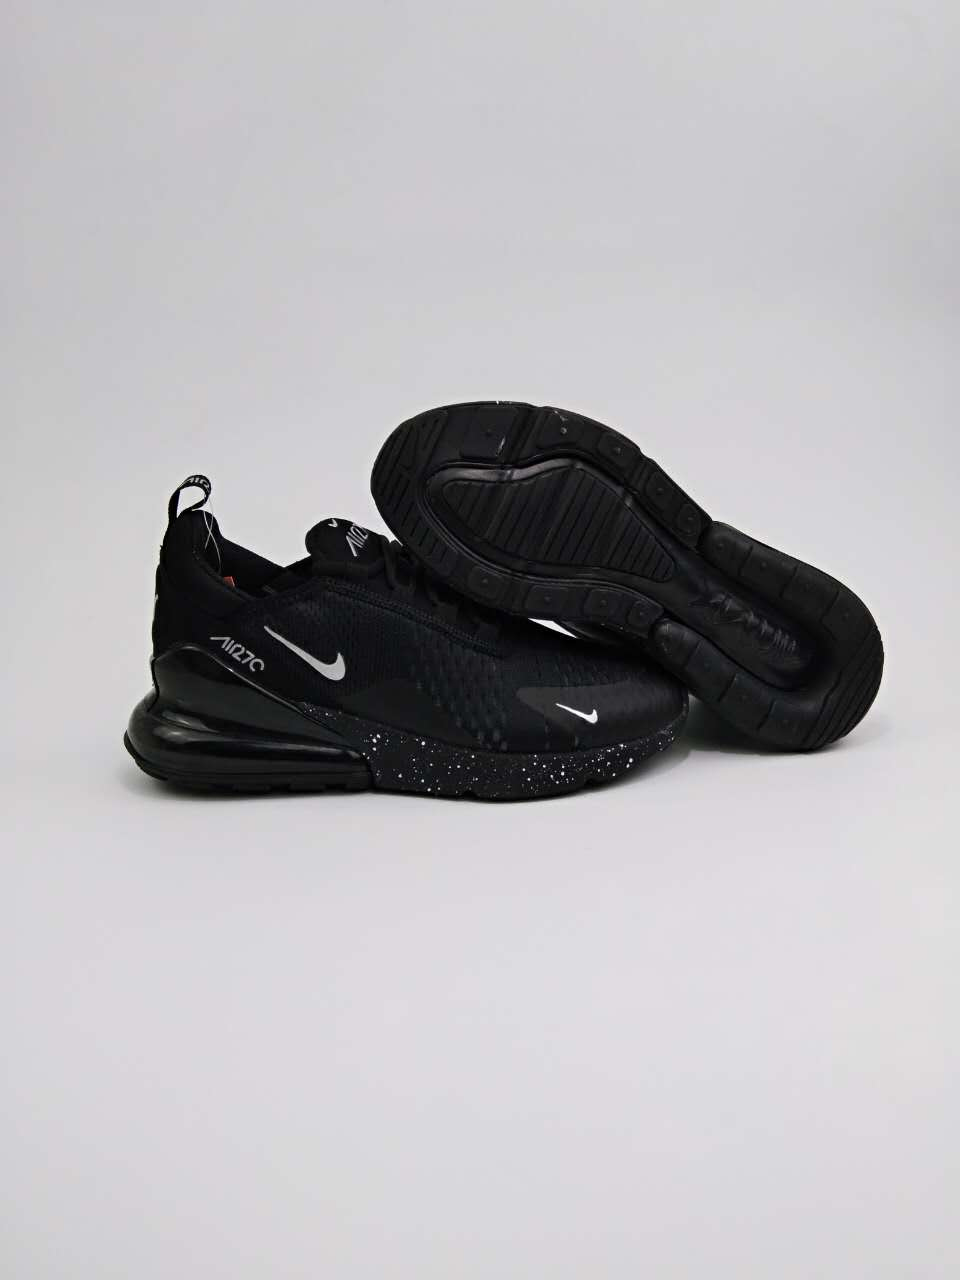 Women Nike Air Max Flair 270 Nano All Black Shoes